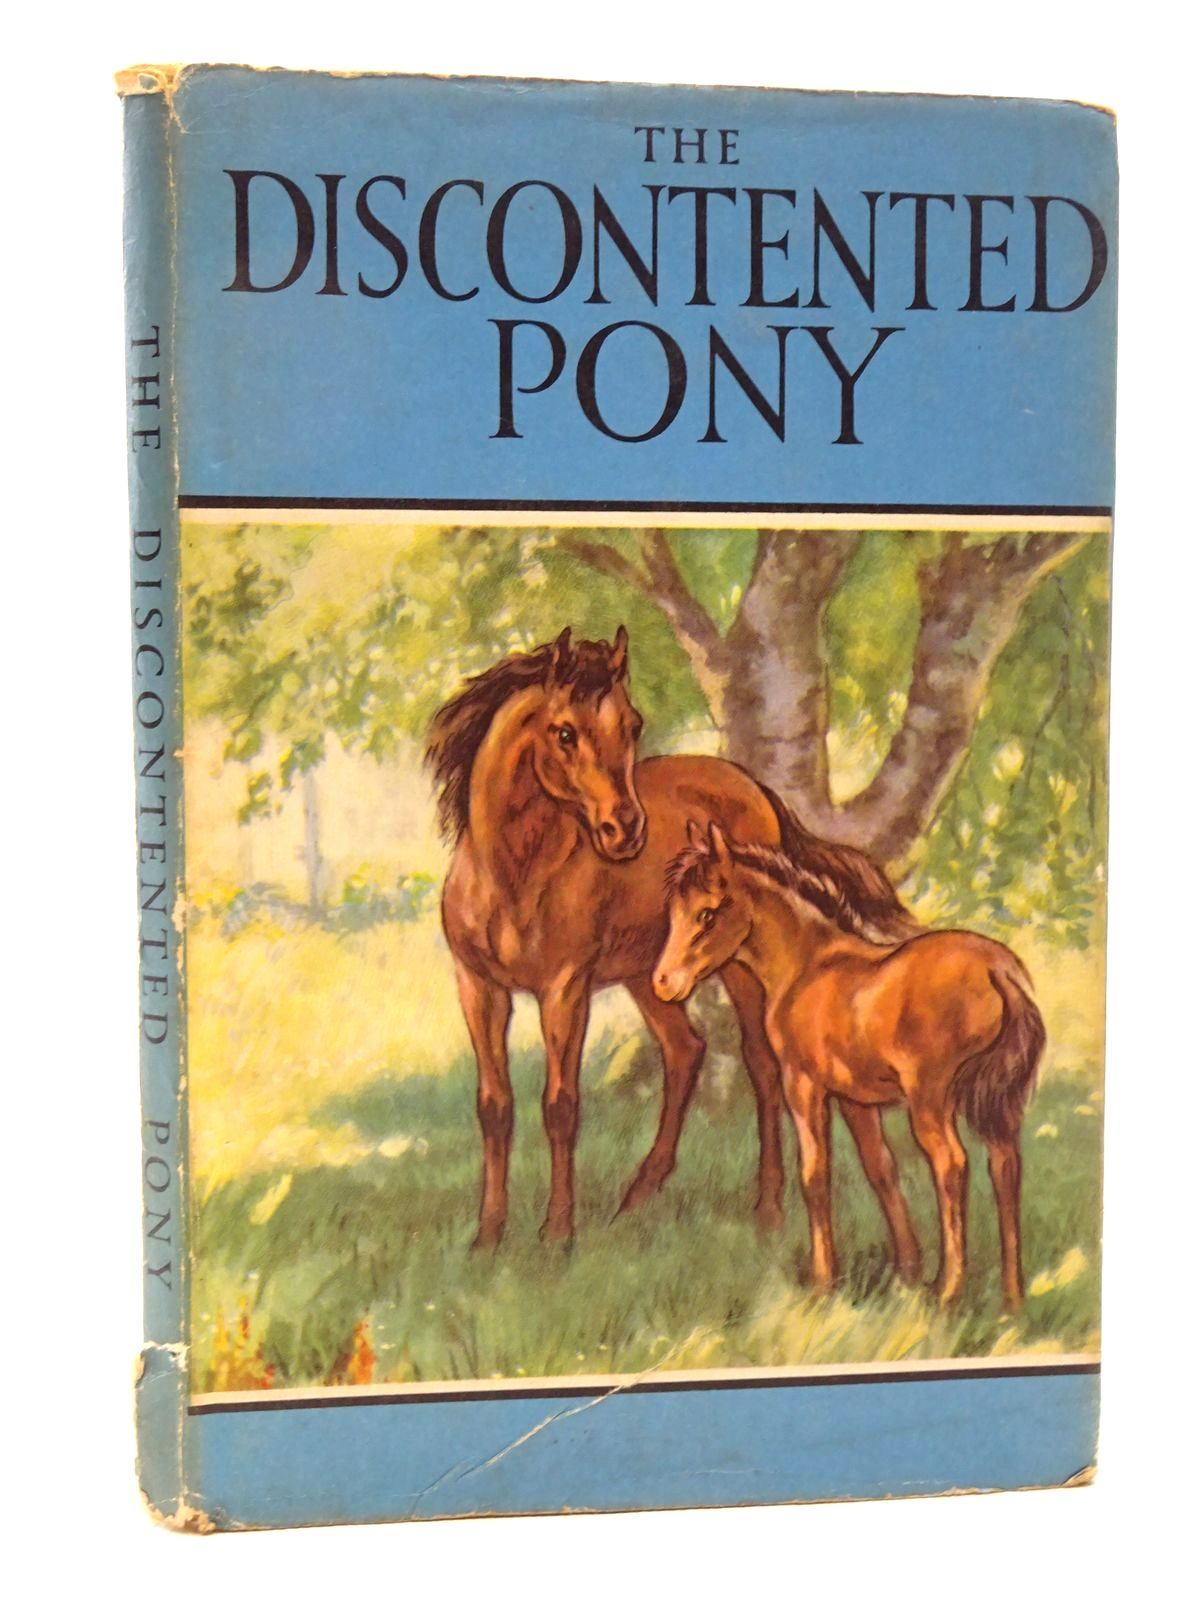 Photo of THE DISCONTENTED PONY written by Barr, Noel illustrated by Hickling, P.B. published by Wills & Hepworth Ltd. (STOCK CODE: 2124337)  for sale by Stella & Rose's Books